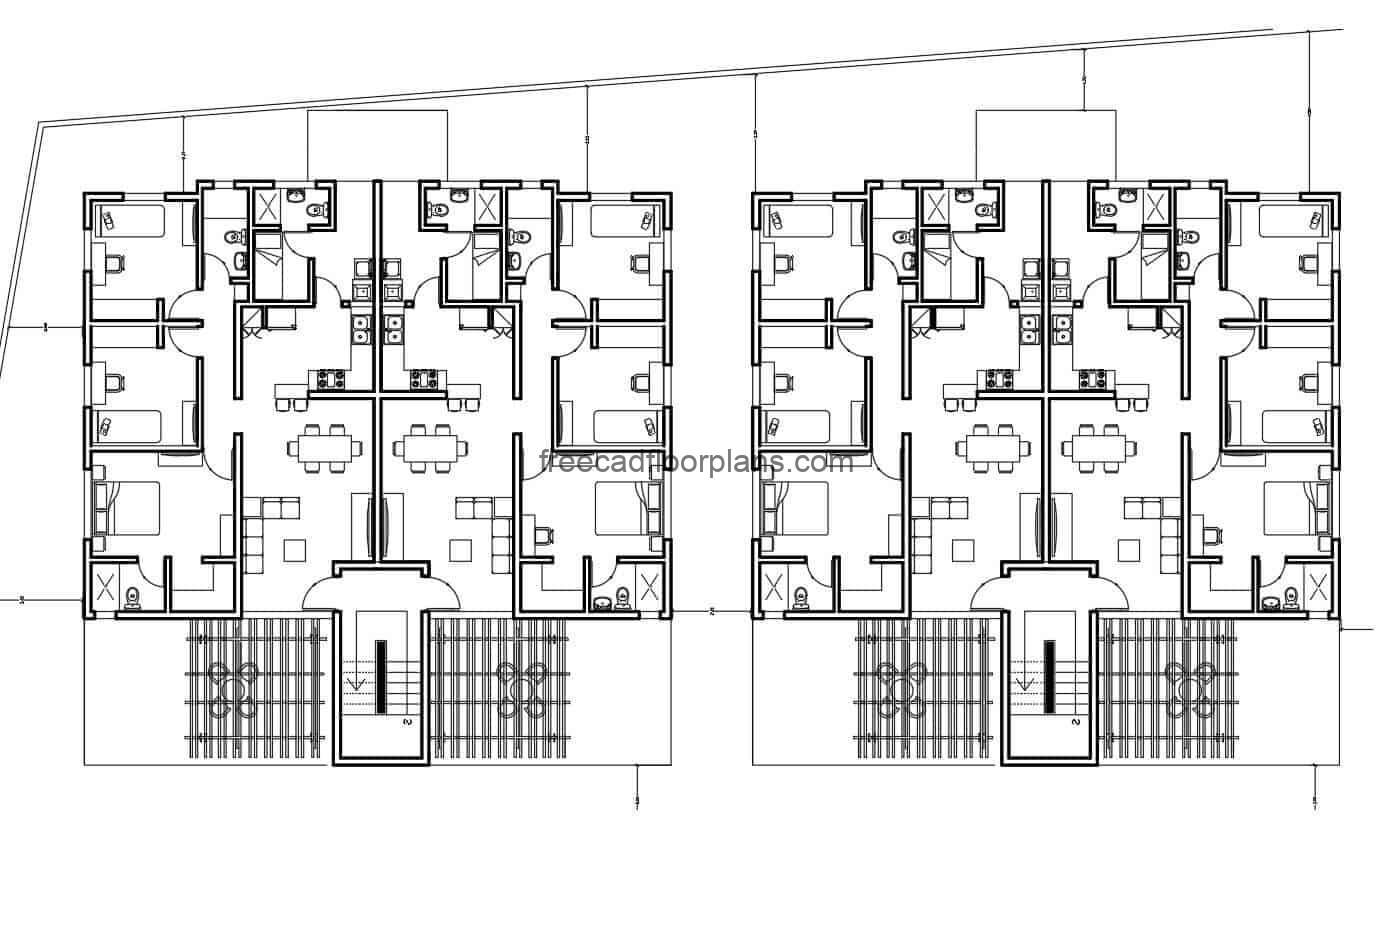 Preliminary design of a complex of rooms with several levels in a raised structure, plans that can be edited in DWG format